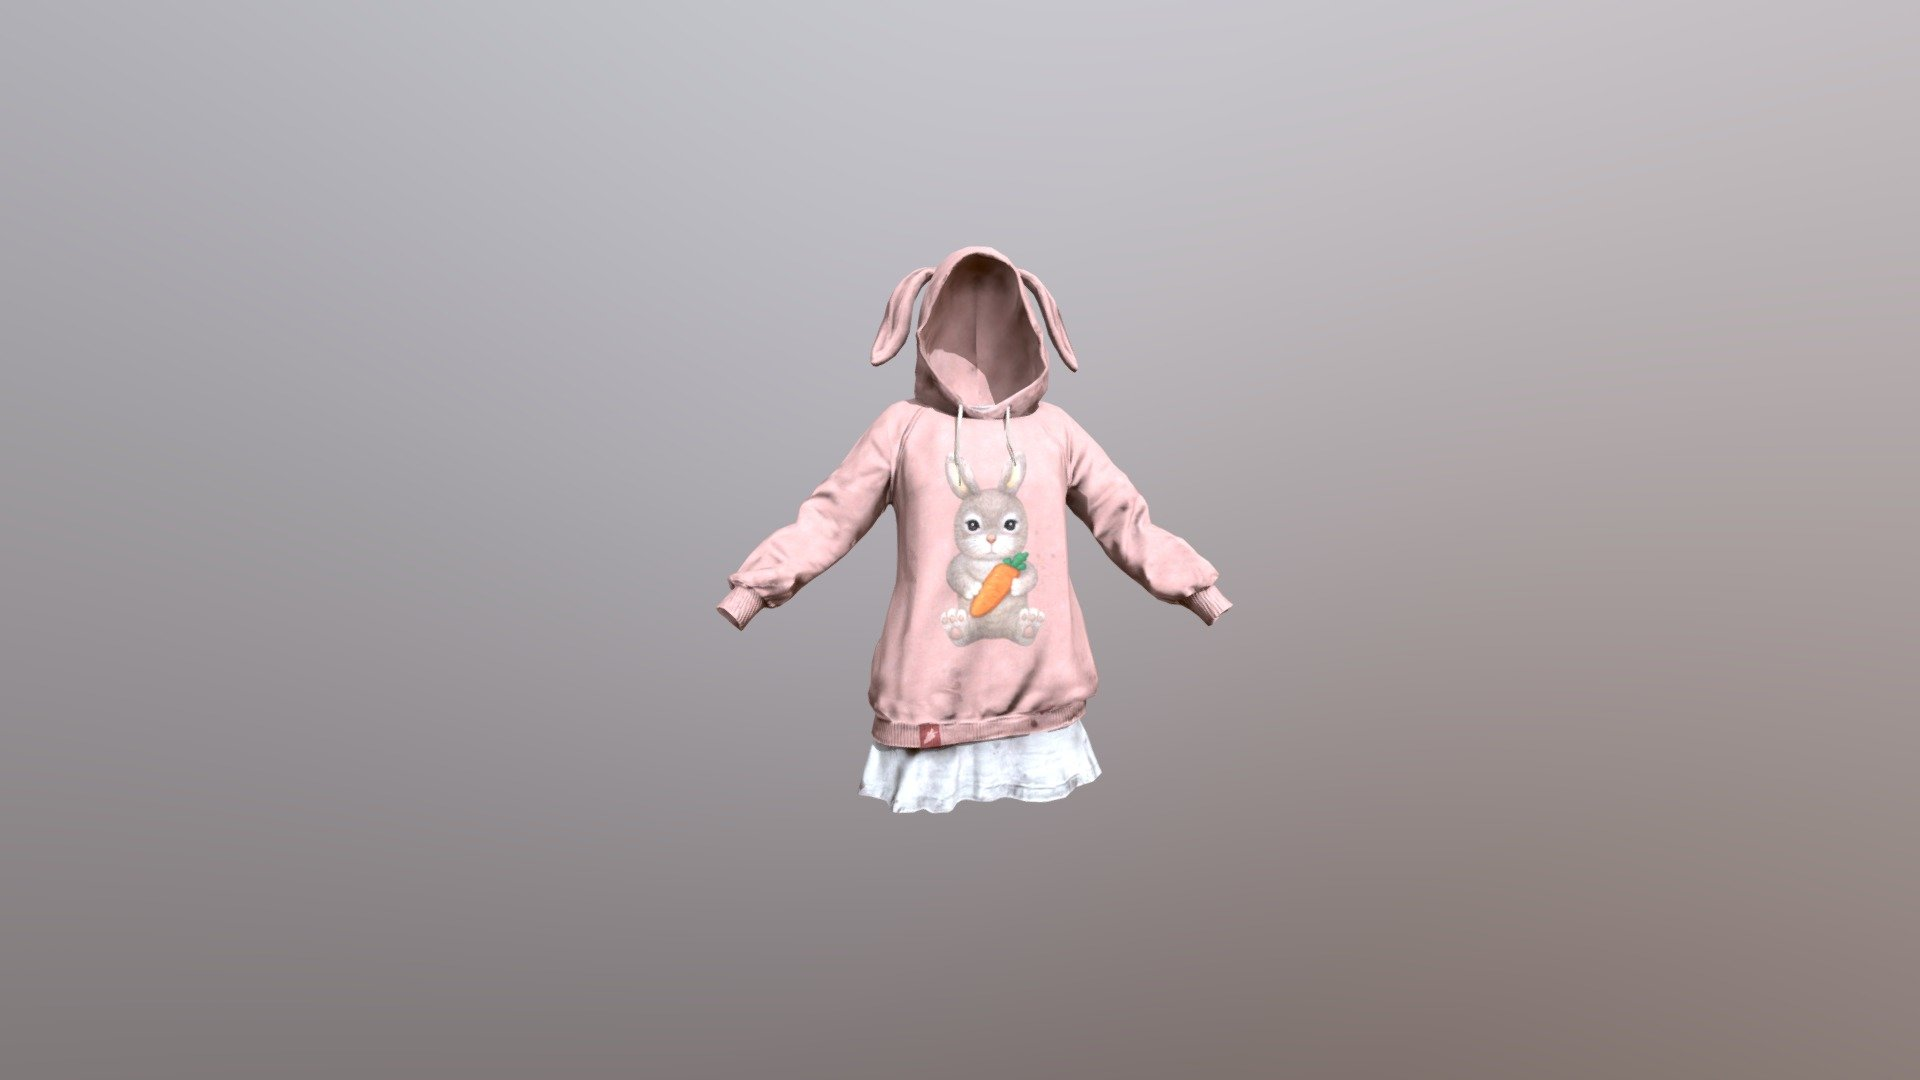 PUBG Rabbit Season Hoodie 🐇 (LEGAL CODE) Region Free